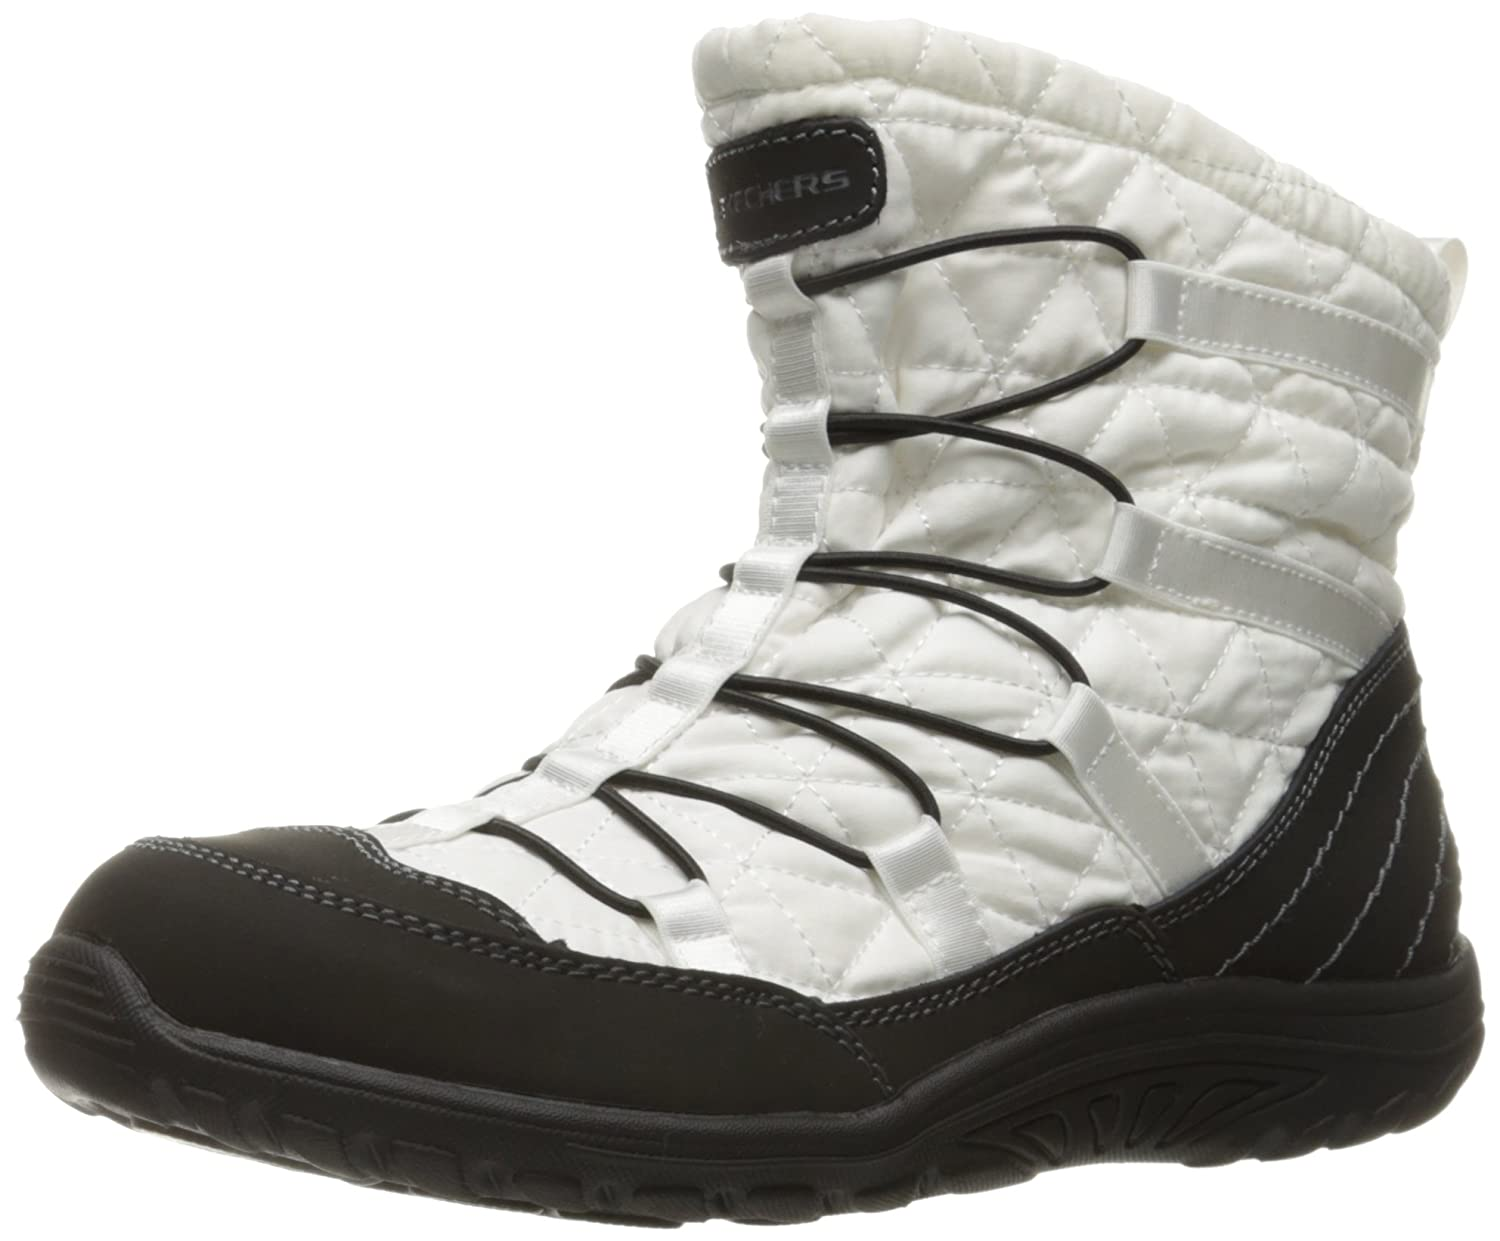 Skechers Womens Reggae Fest Steady Quilted Bungee Ankle Bootie  10 B(M) US|White/Black